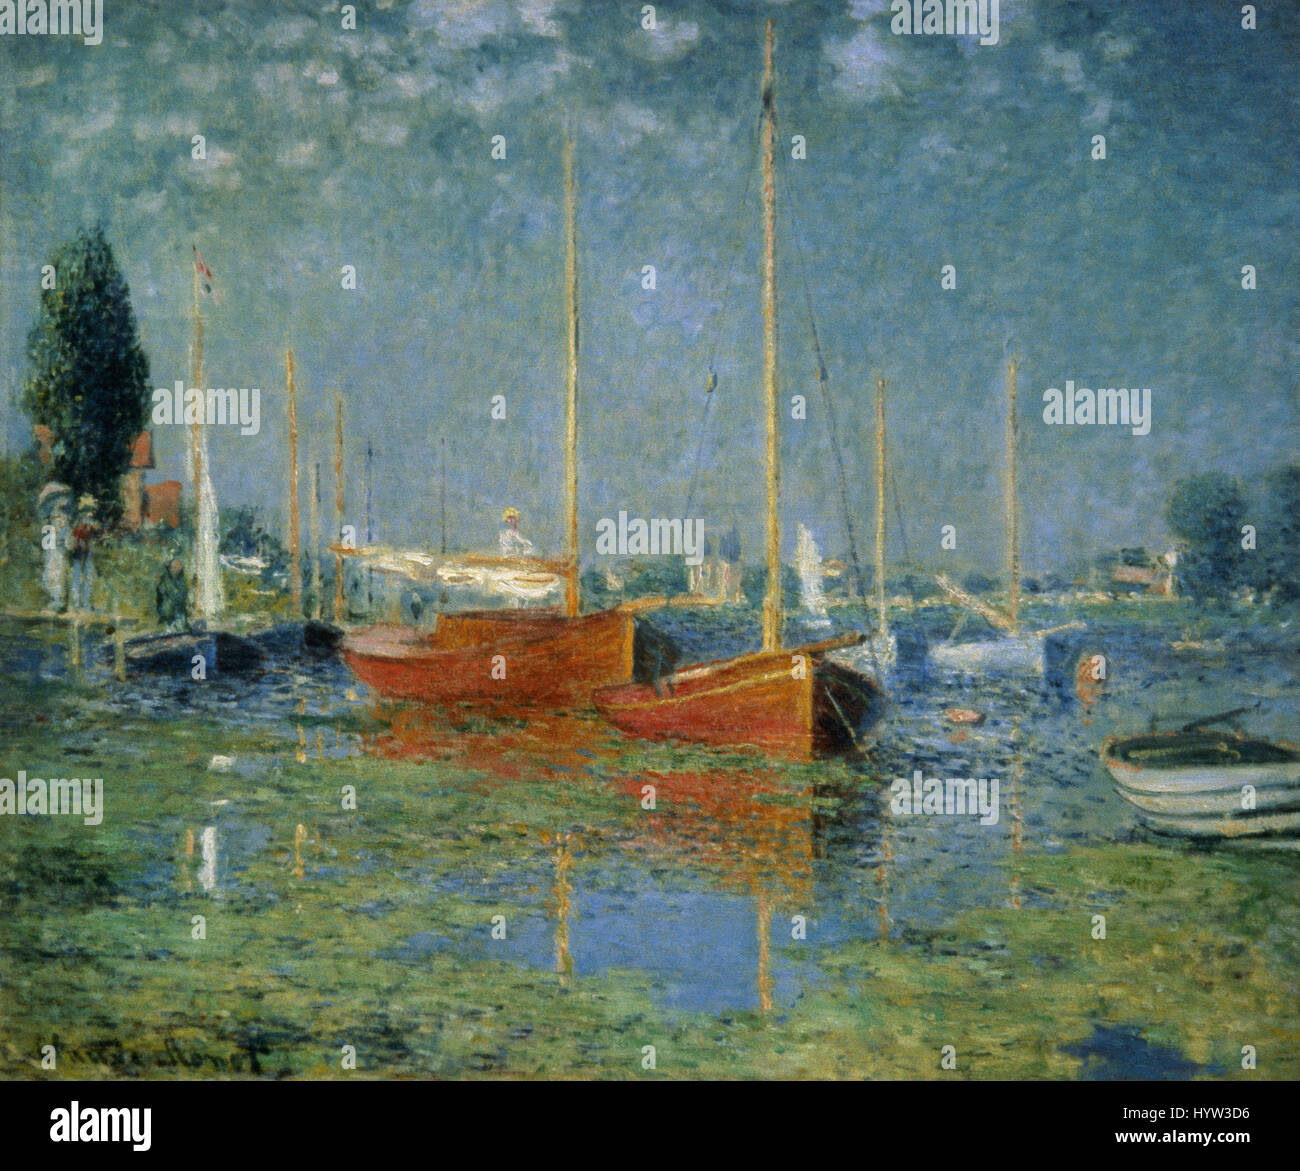 Impressionism Paris: Claude Monet (1840-1926). French Painter. Impressionism